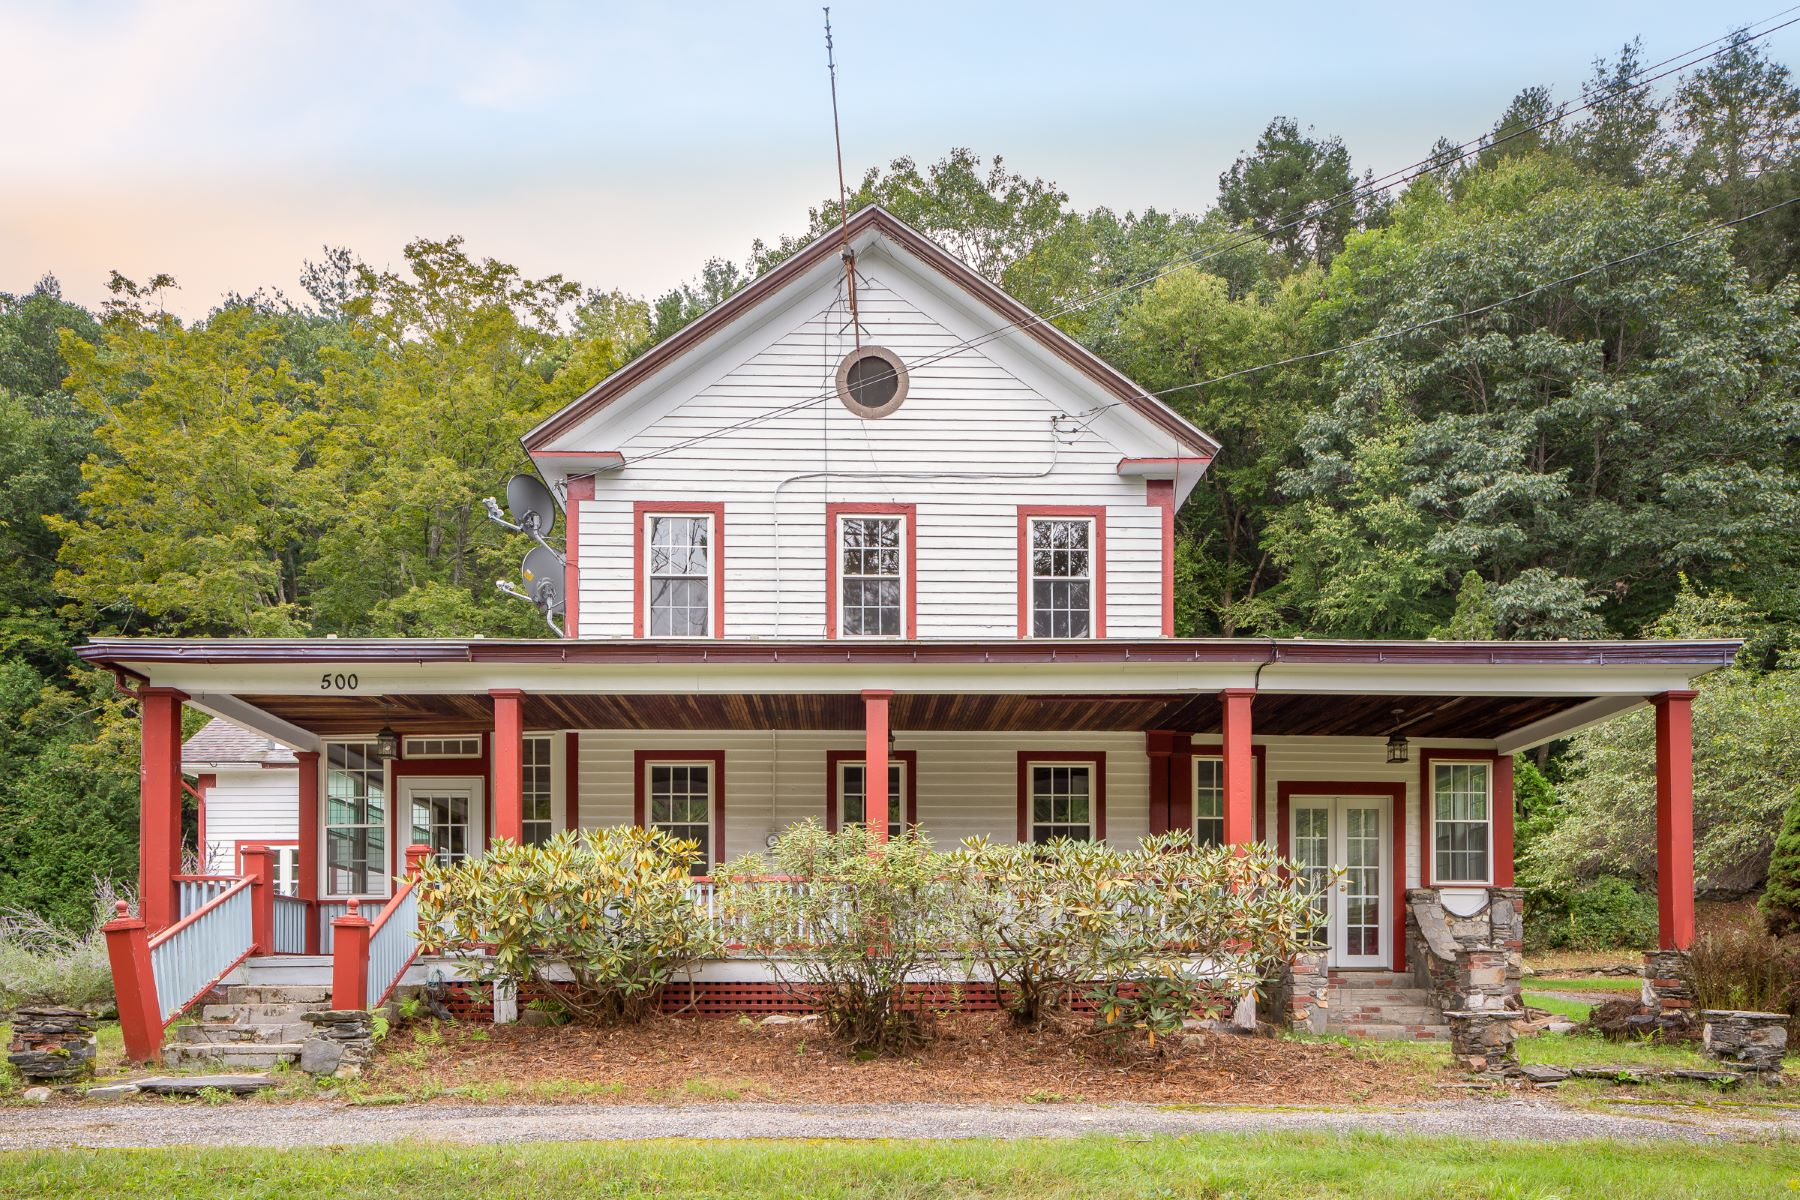 Single Family Home for Active at Historic Country Farmhouse with Stream Frontage 500 East River Rd Chester, Massachusetts 01011 United States